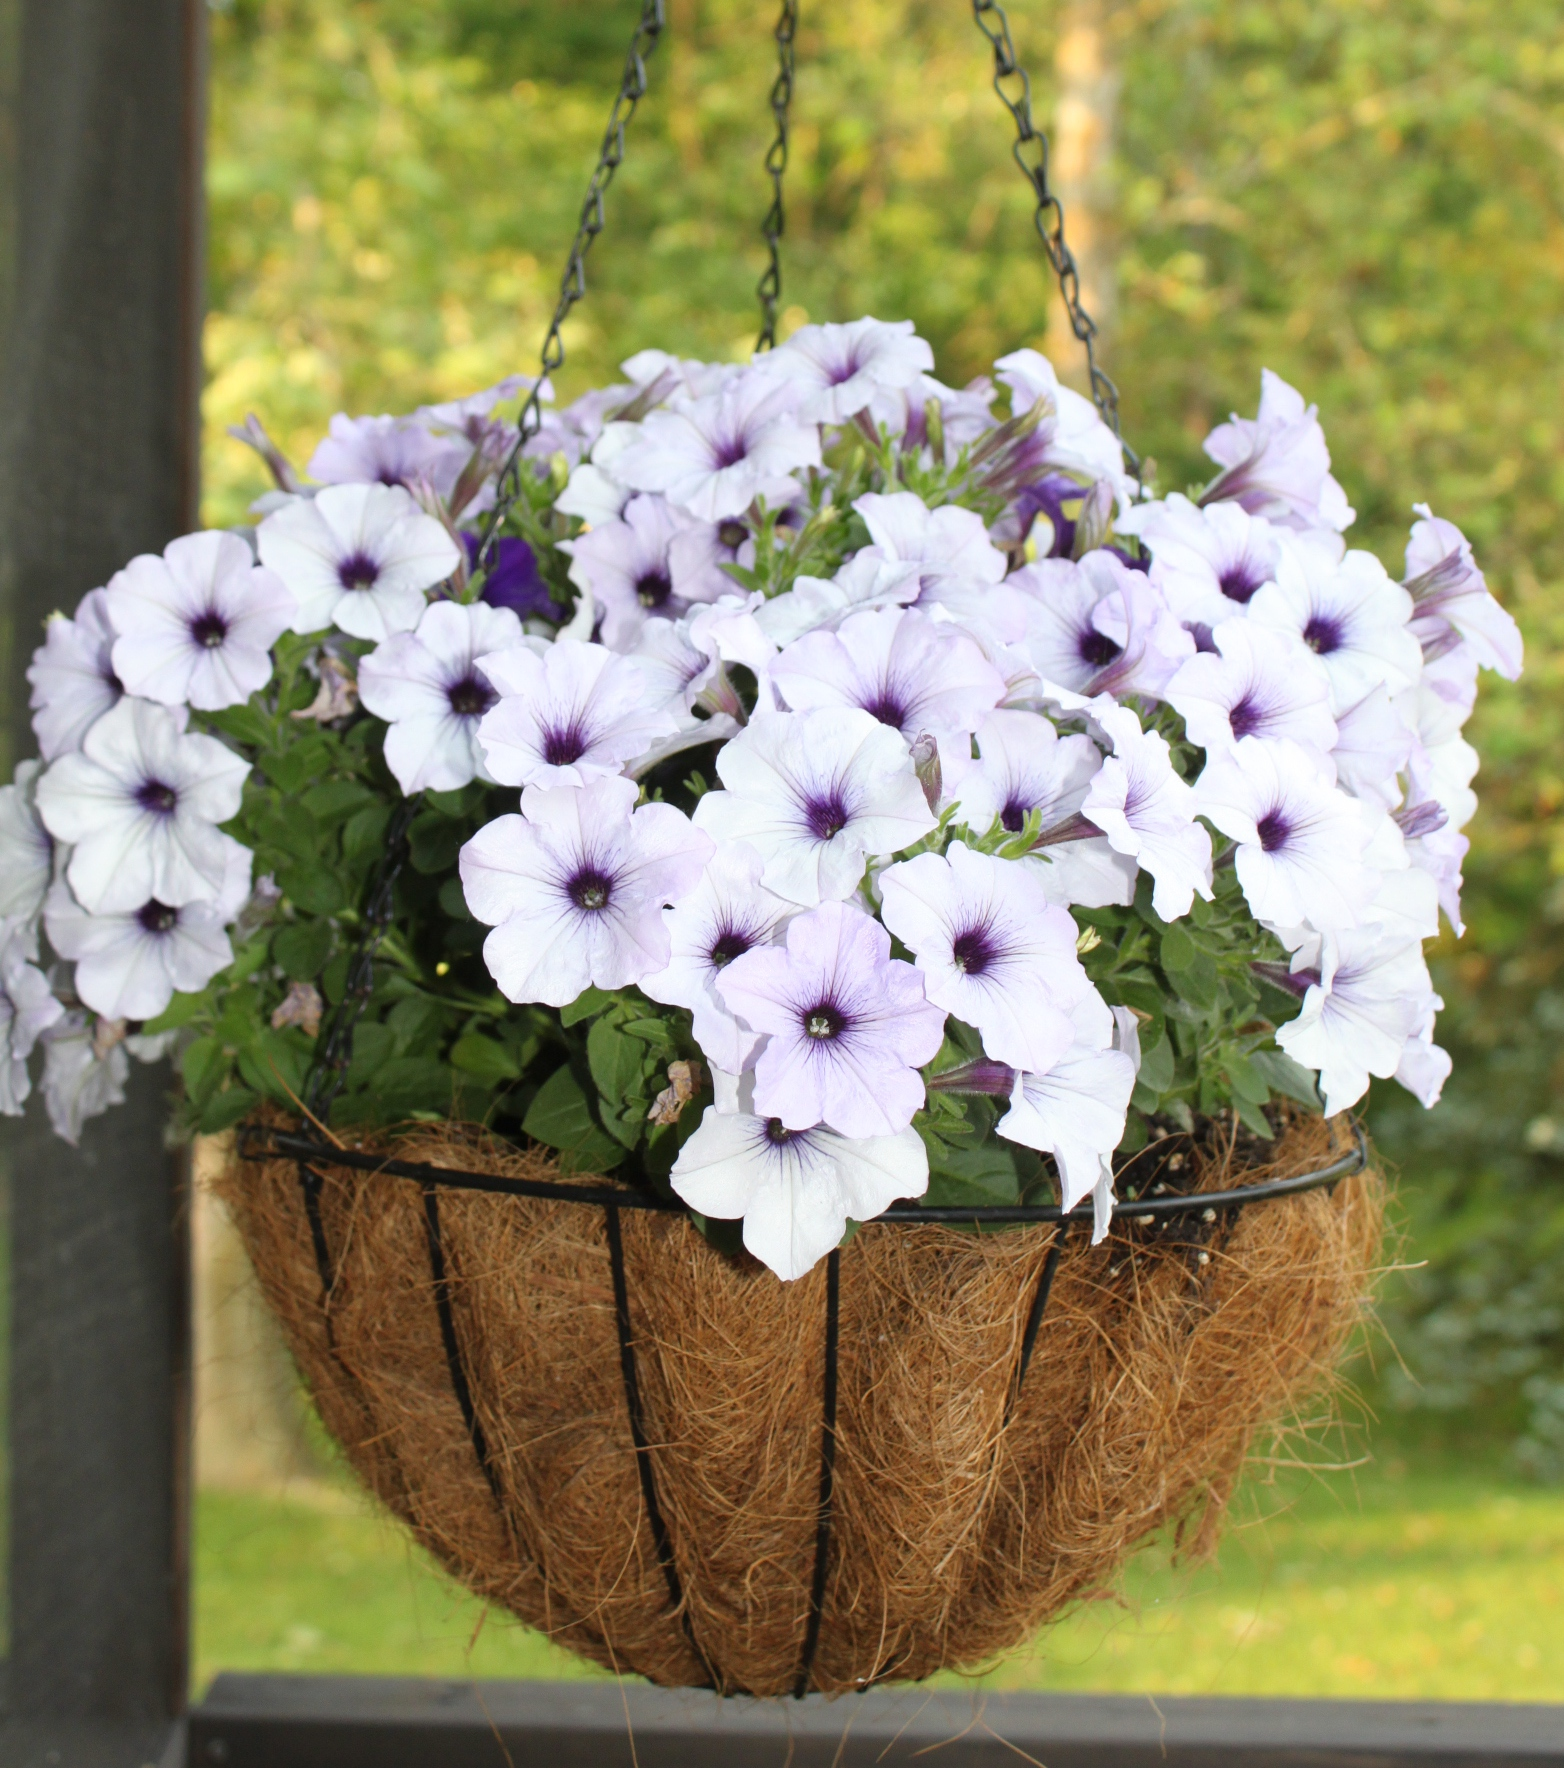 How to make hanging baskets - How To Make Hanging Baskets 43